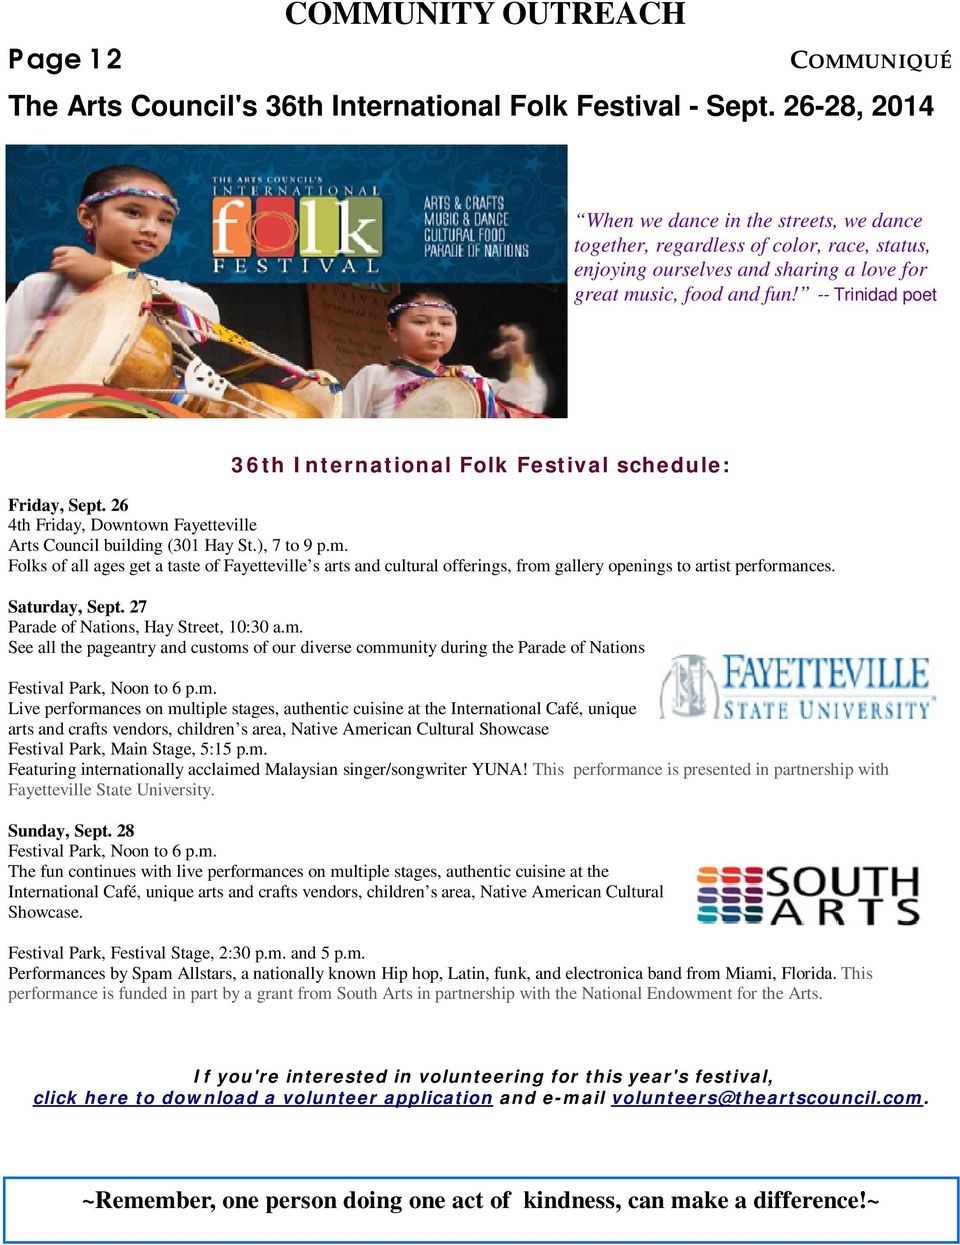 -- Trinidad poet 36th International Folk Festival schedule: Friday, Sept. 26 4th Friday, Downtown Fayetteville Arts Council building (301 Hay St.), 7 to 9 p.m.